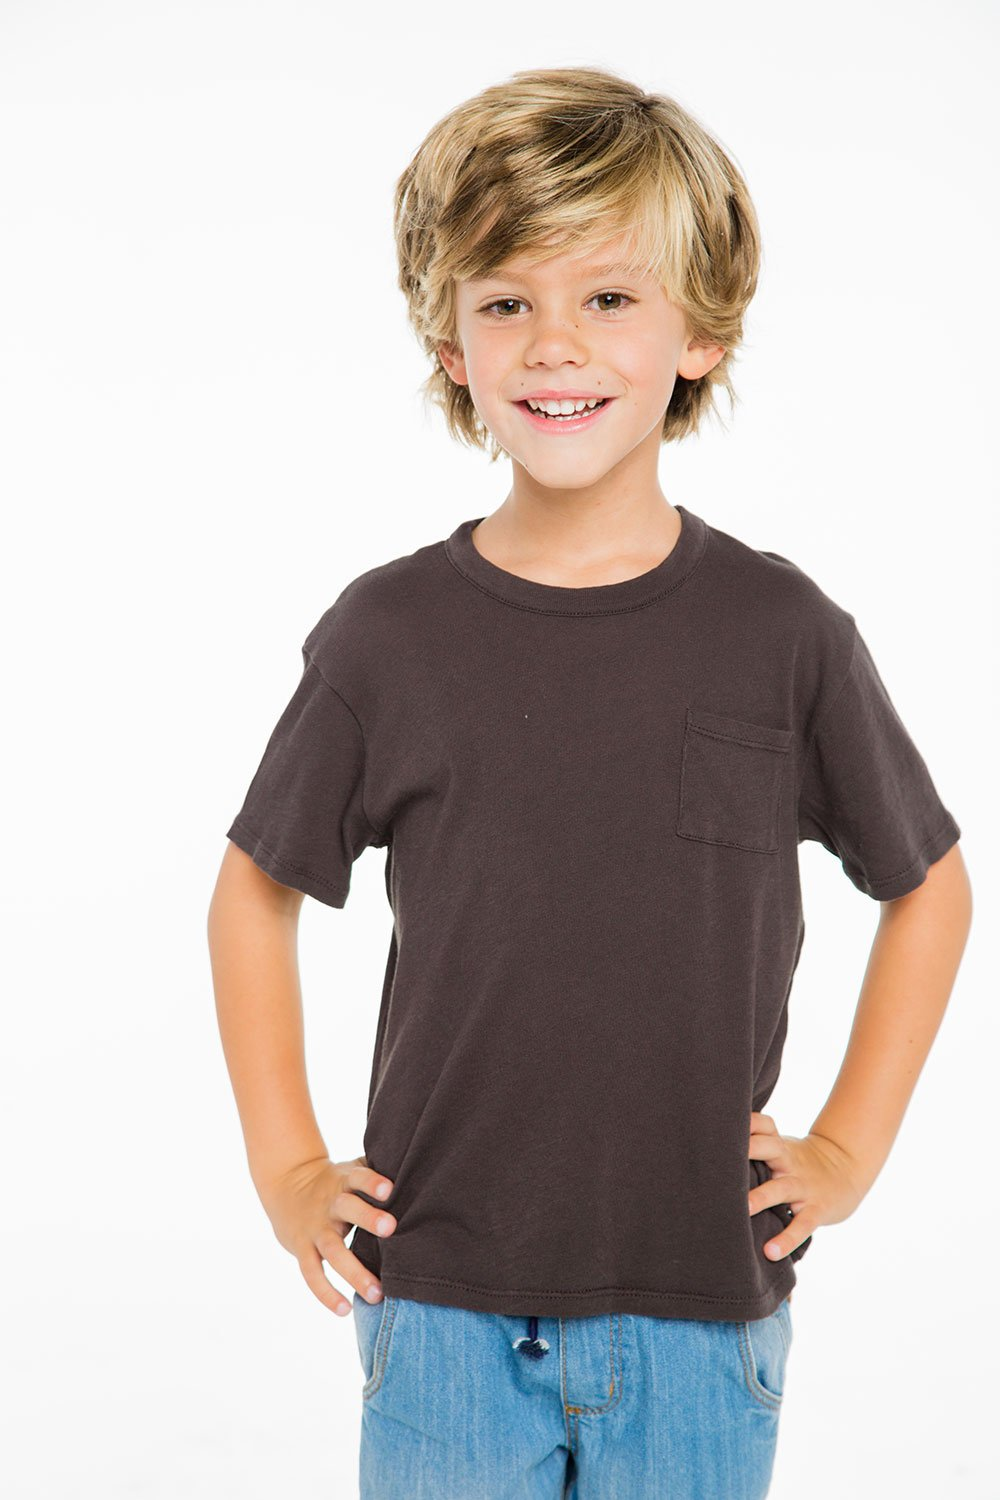 BOYS COTTON JERSEY S/S BASIC TEE W/ POCKET